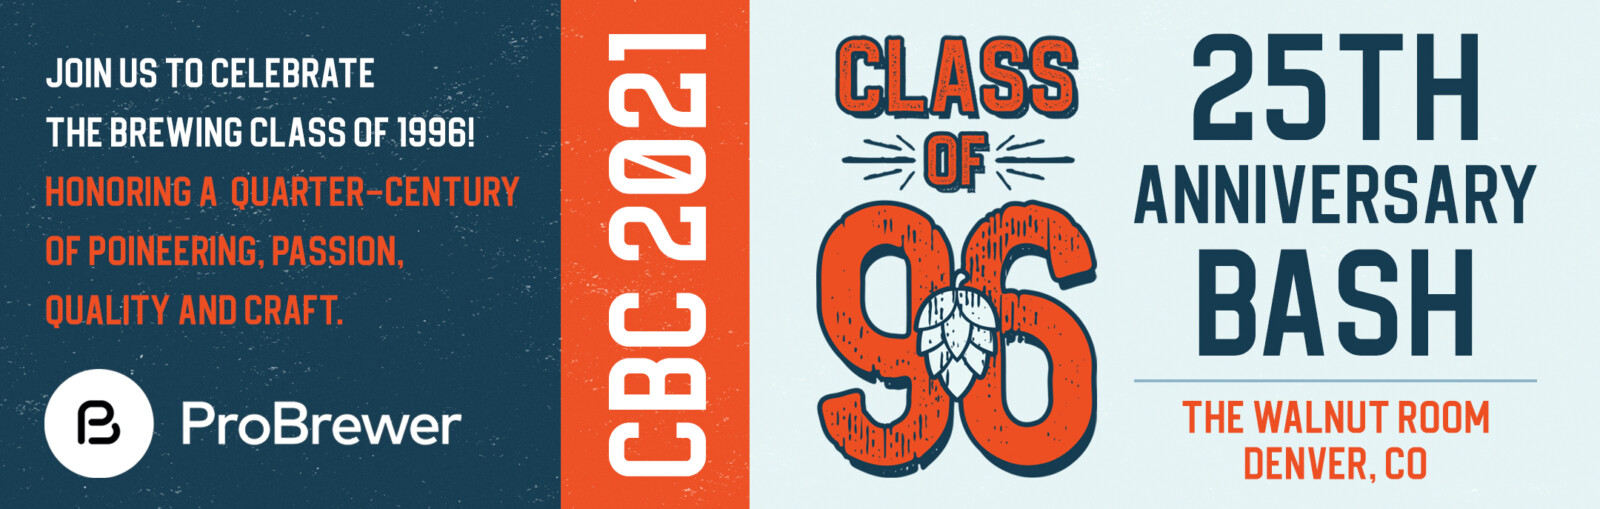 Join us to celebrate the brewing class of 1996! CBC 2021 Bash at The Walnut Room, Denver